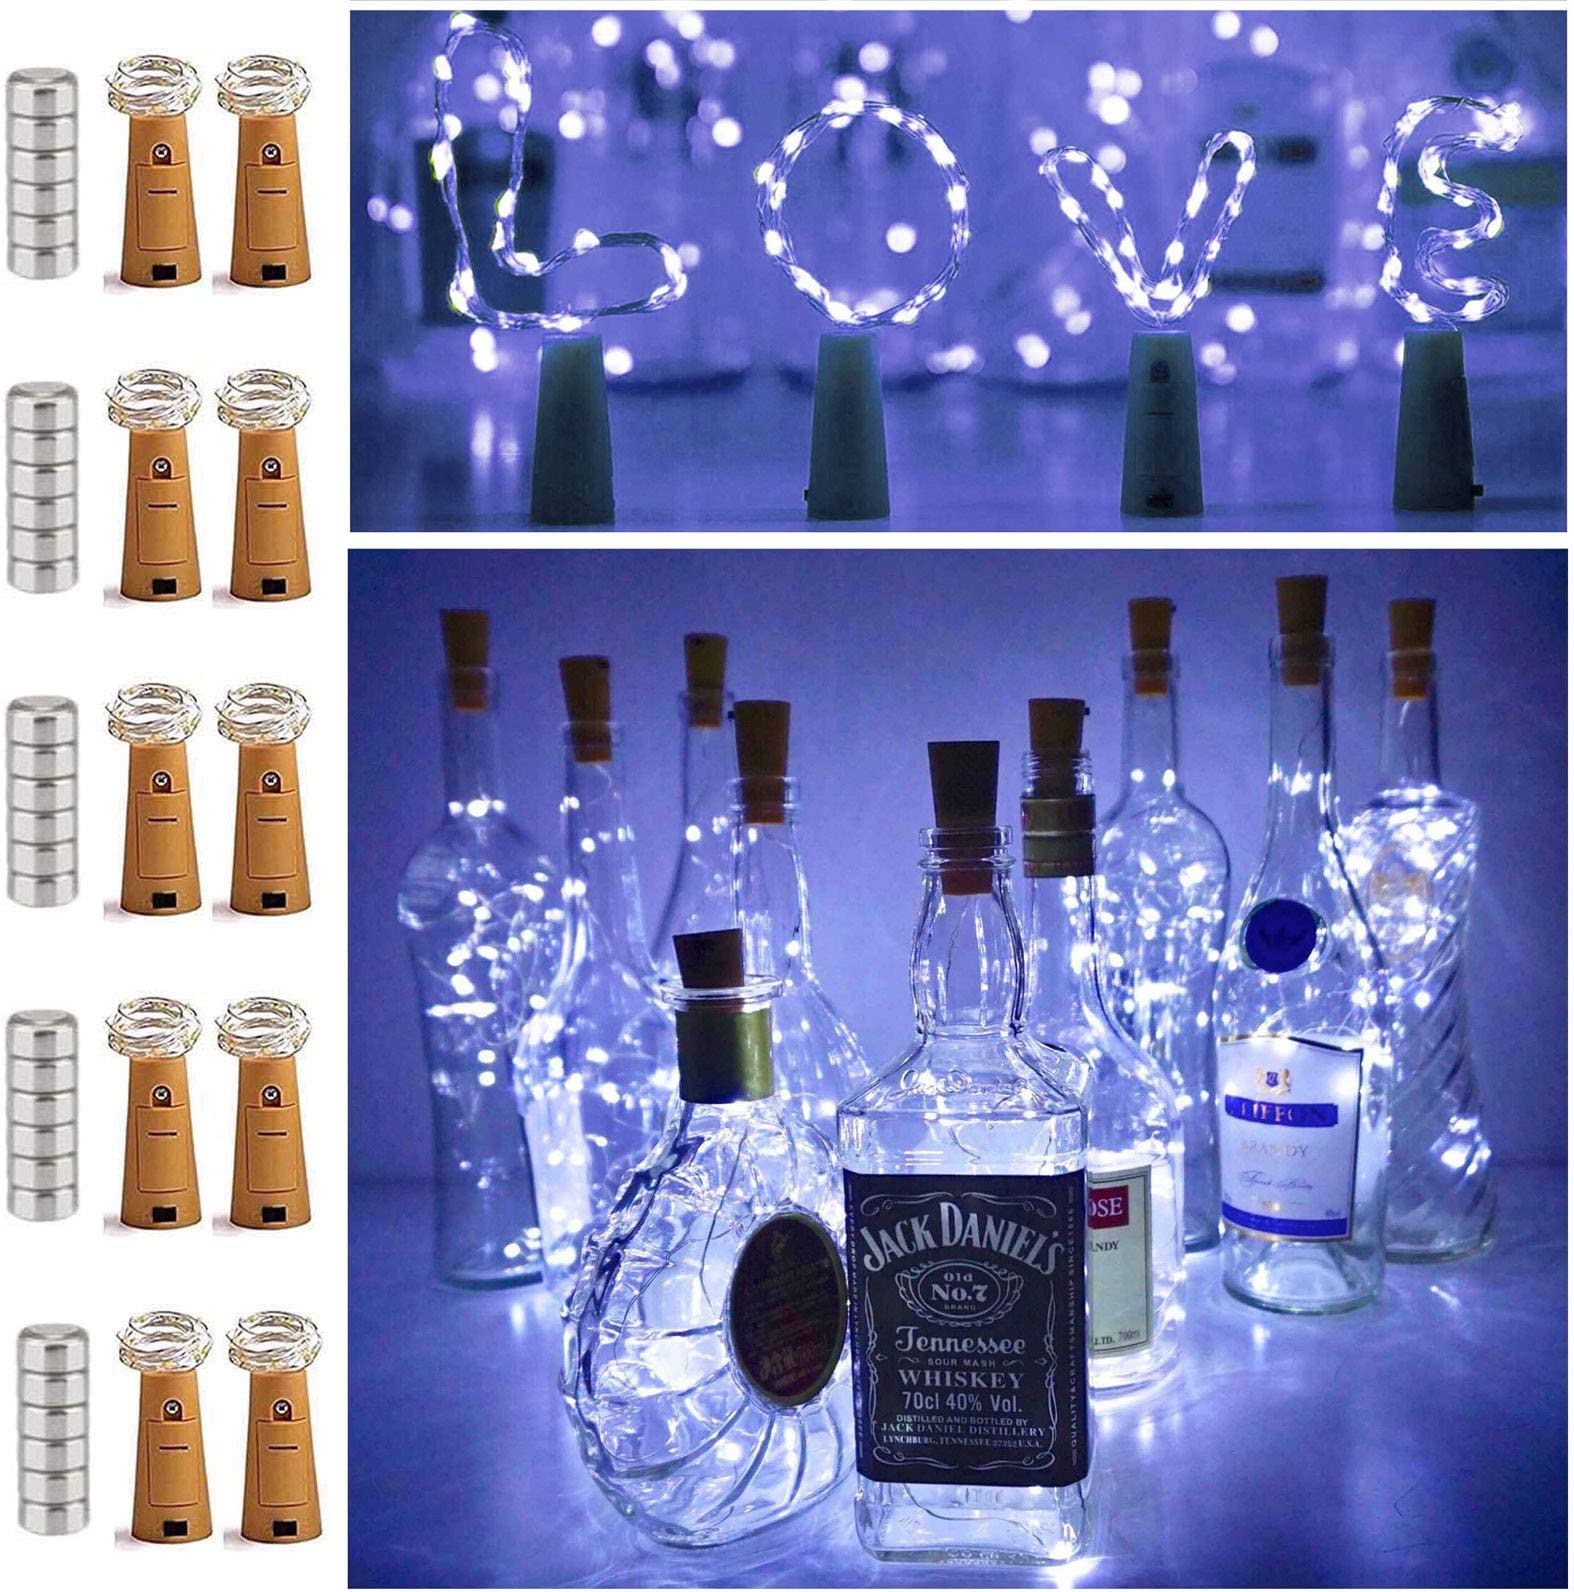 10x 20LED Copper Wire Wine Bottle Cork Battery Operated Fairy String Light GS